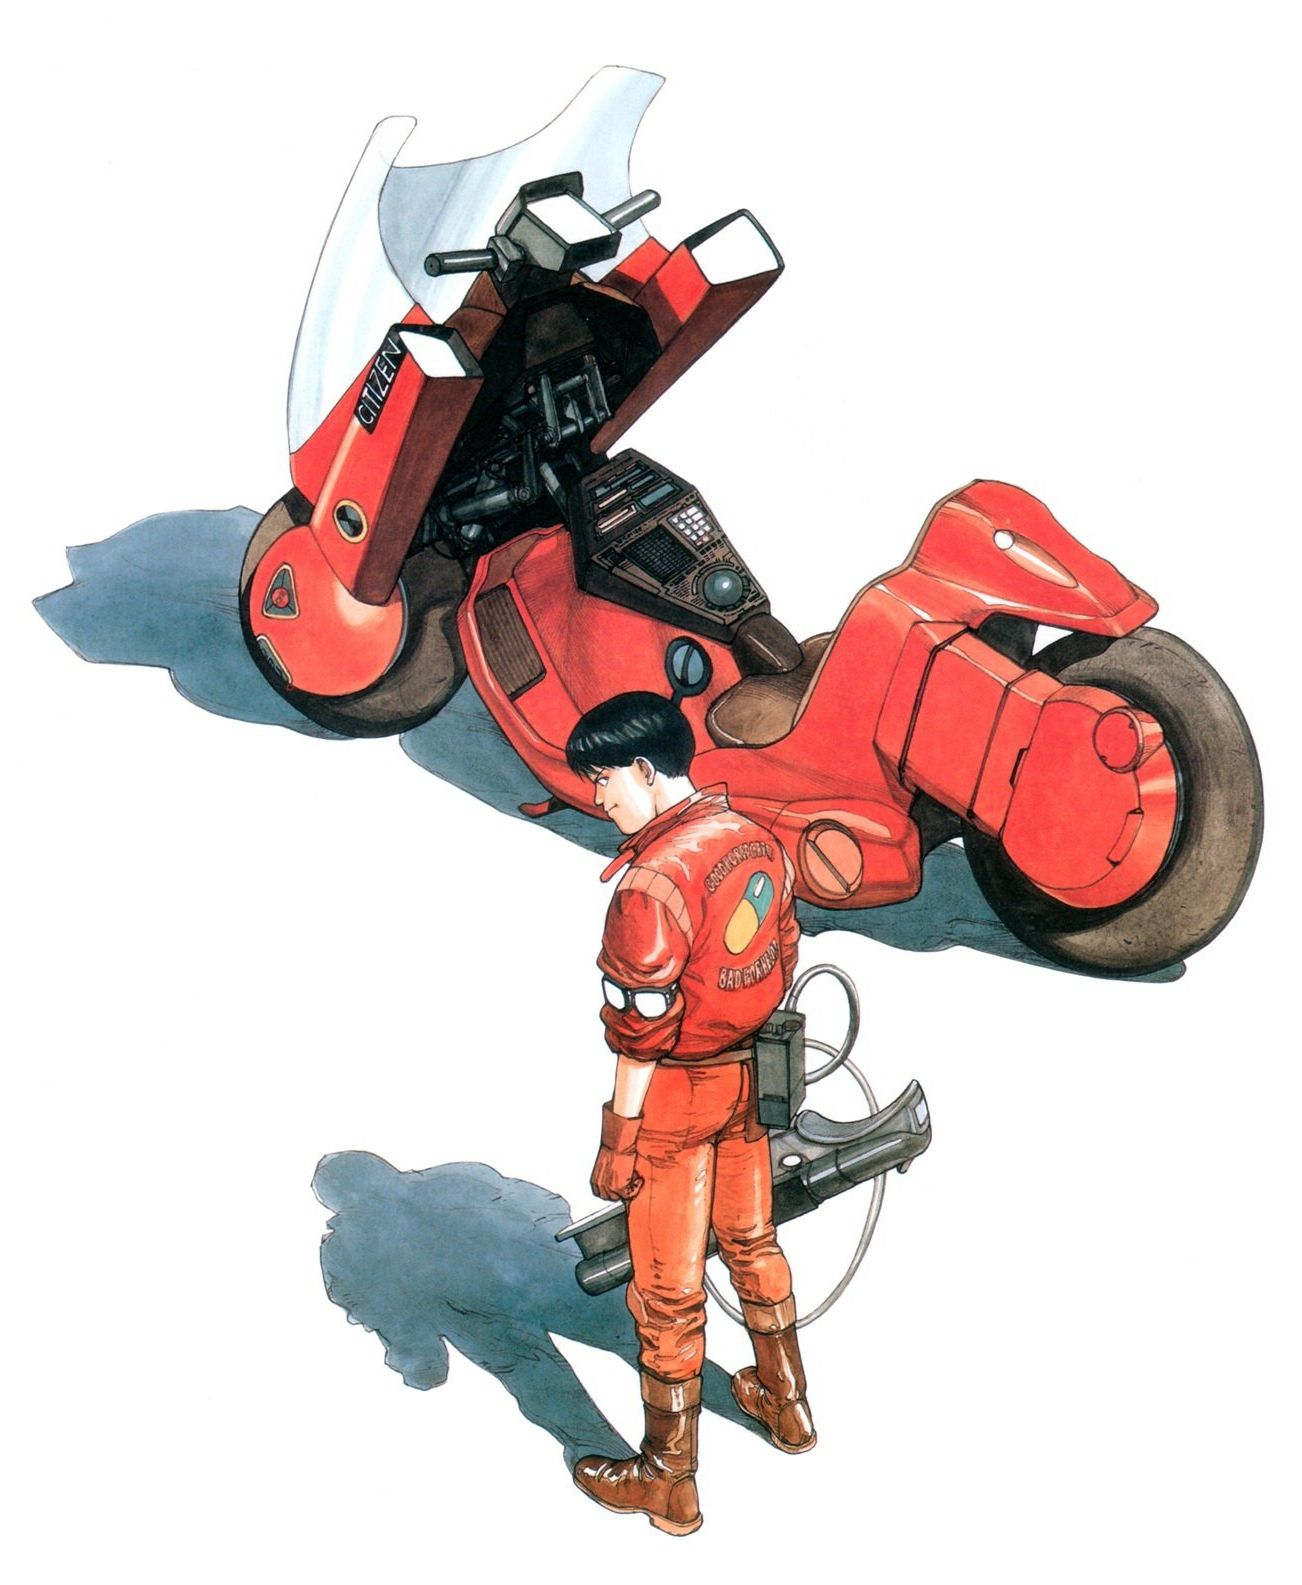 Akira is a 1988 Japanese science fiction anime film